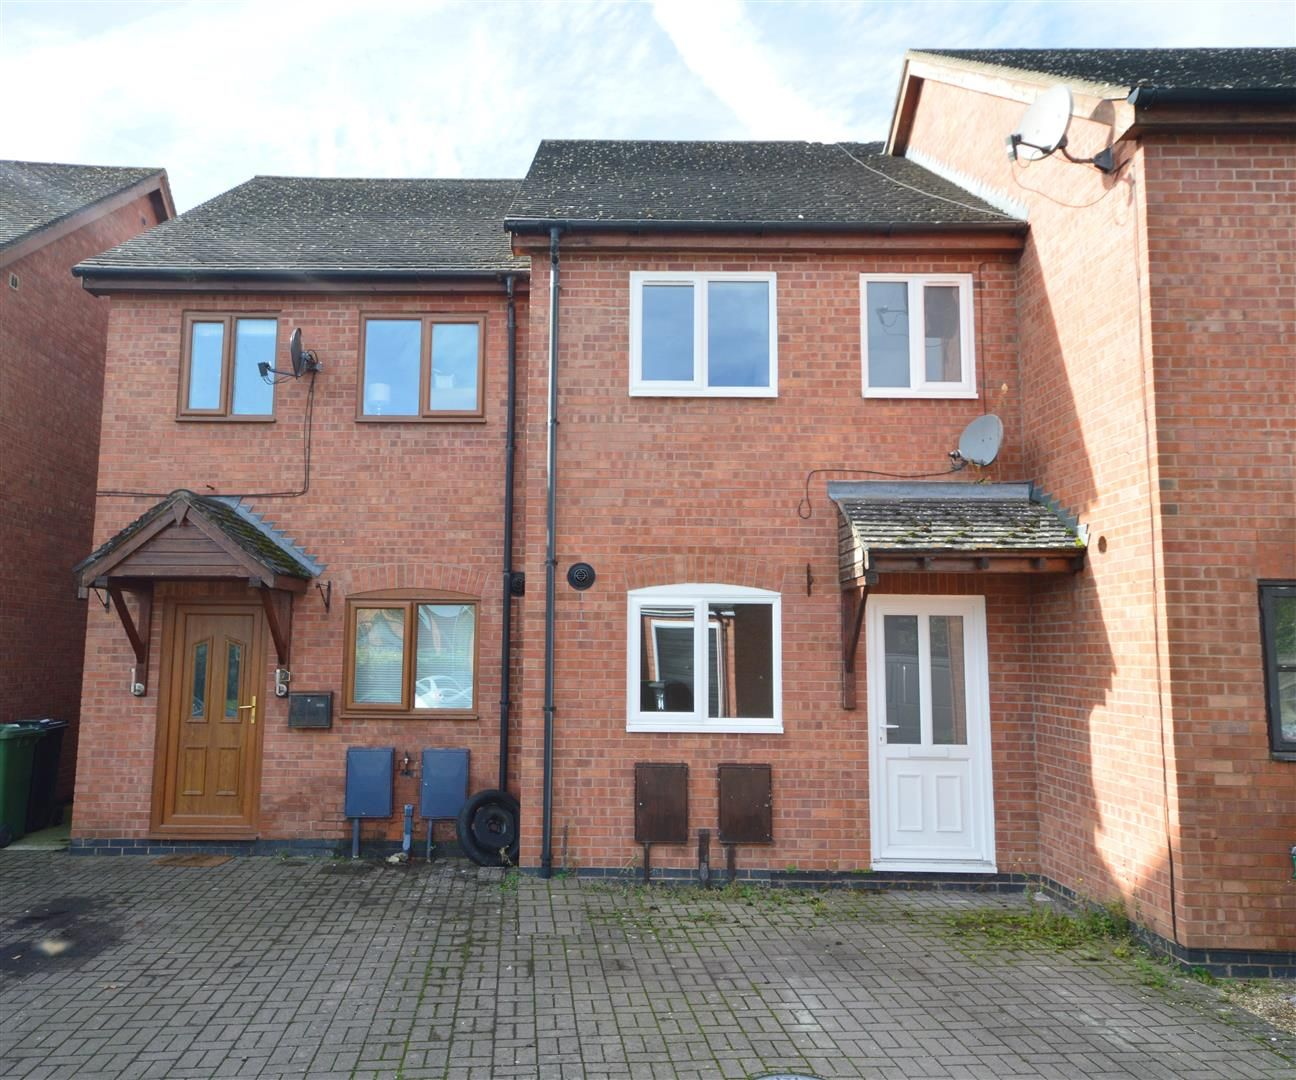 2 bed terraced for sale in Lower Bullingham 2